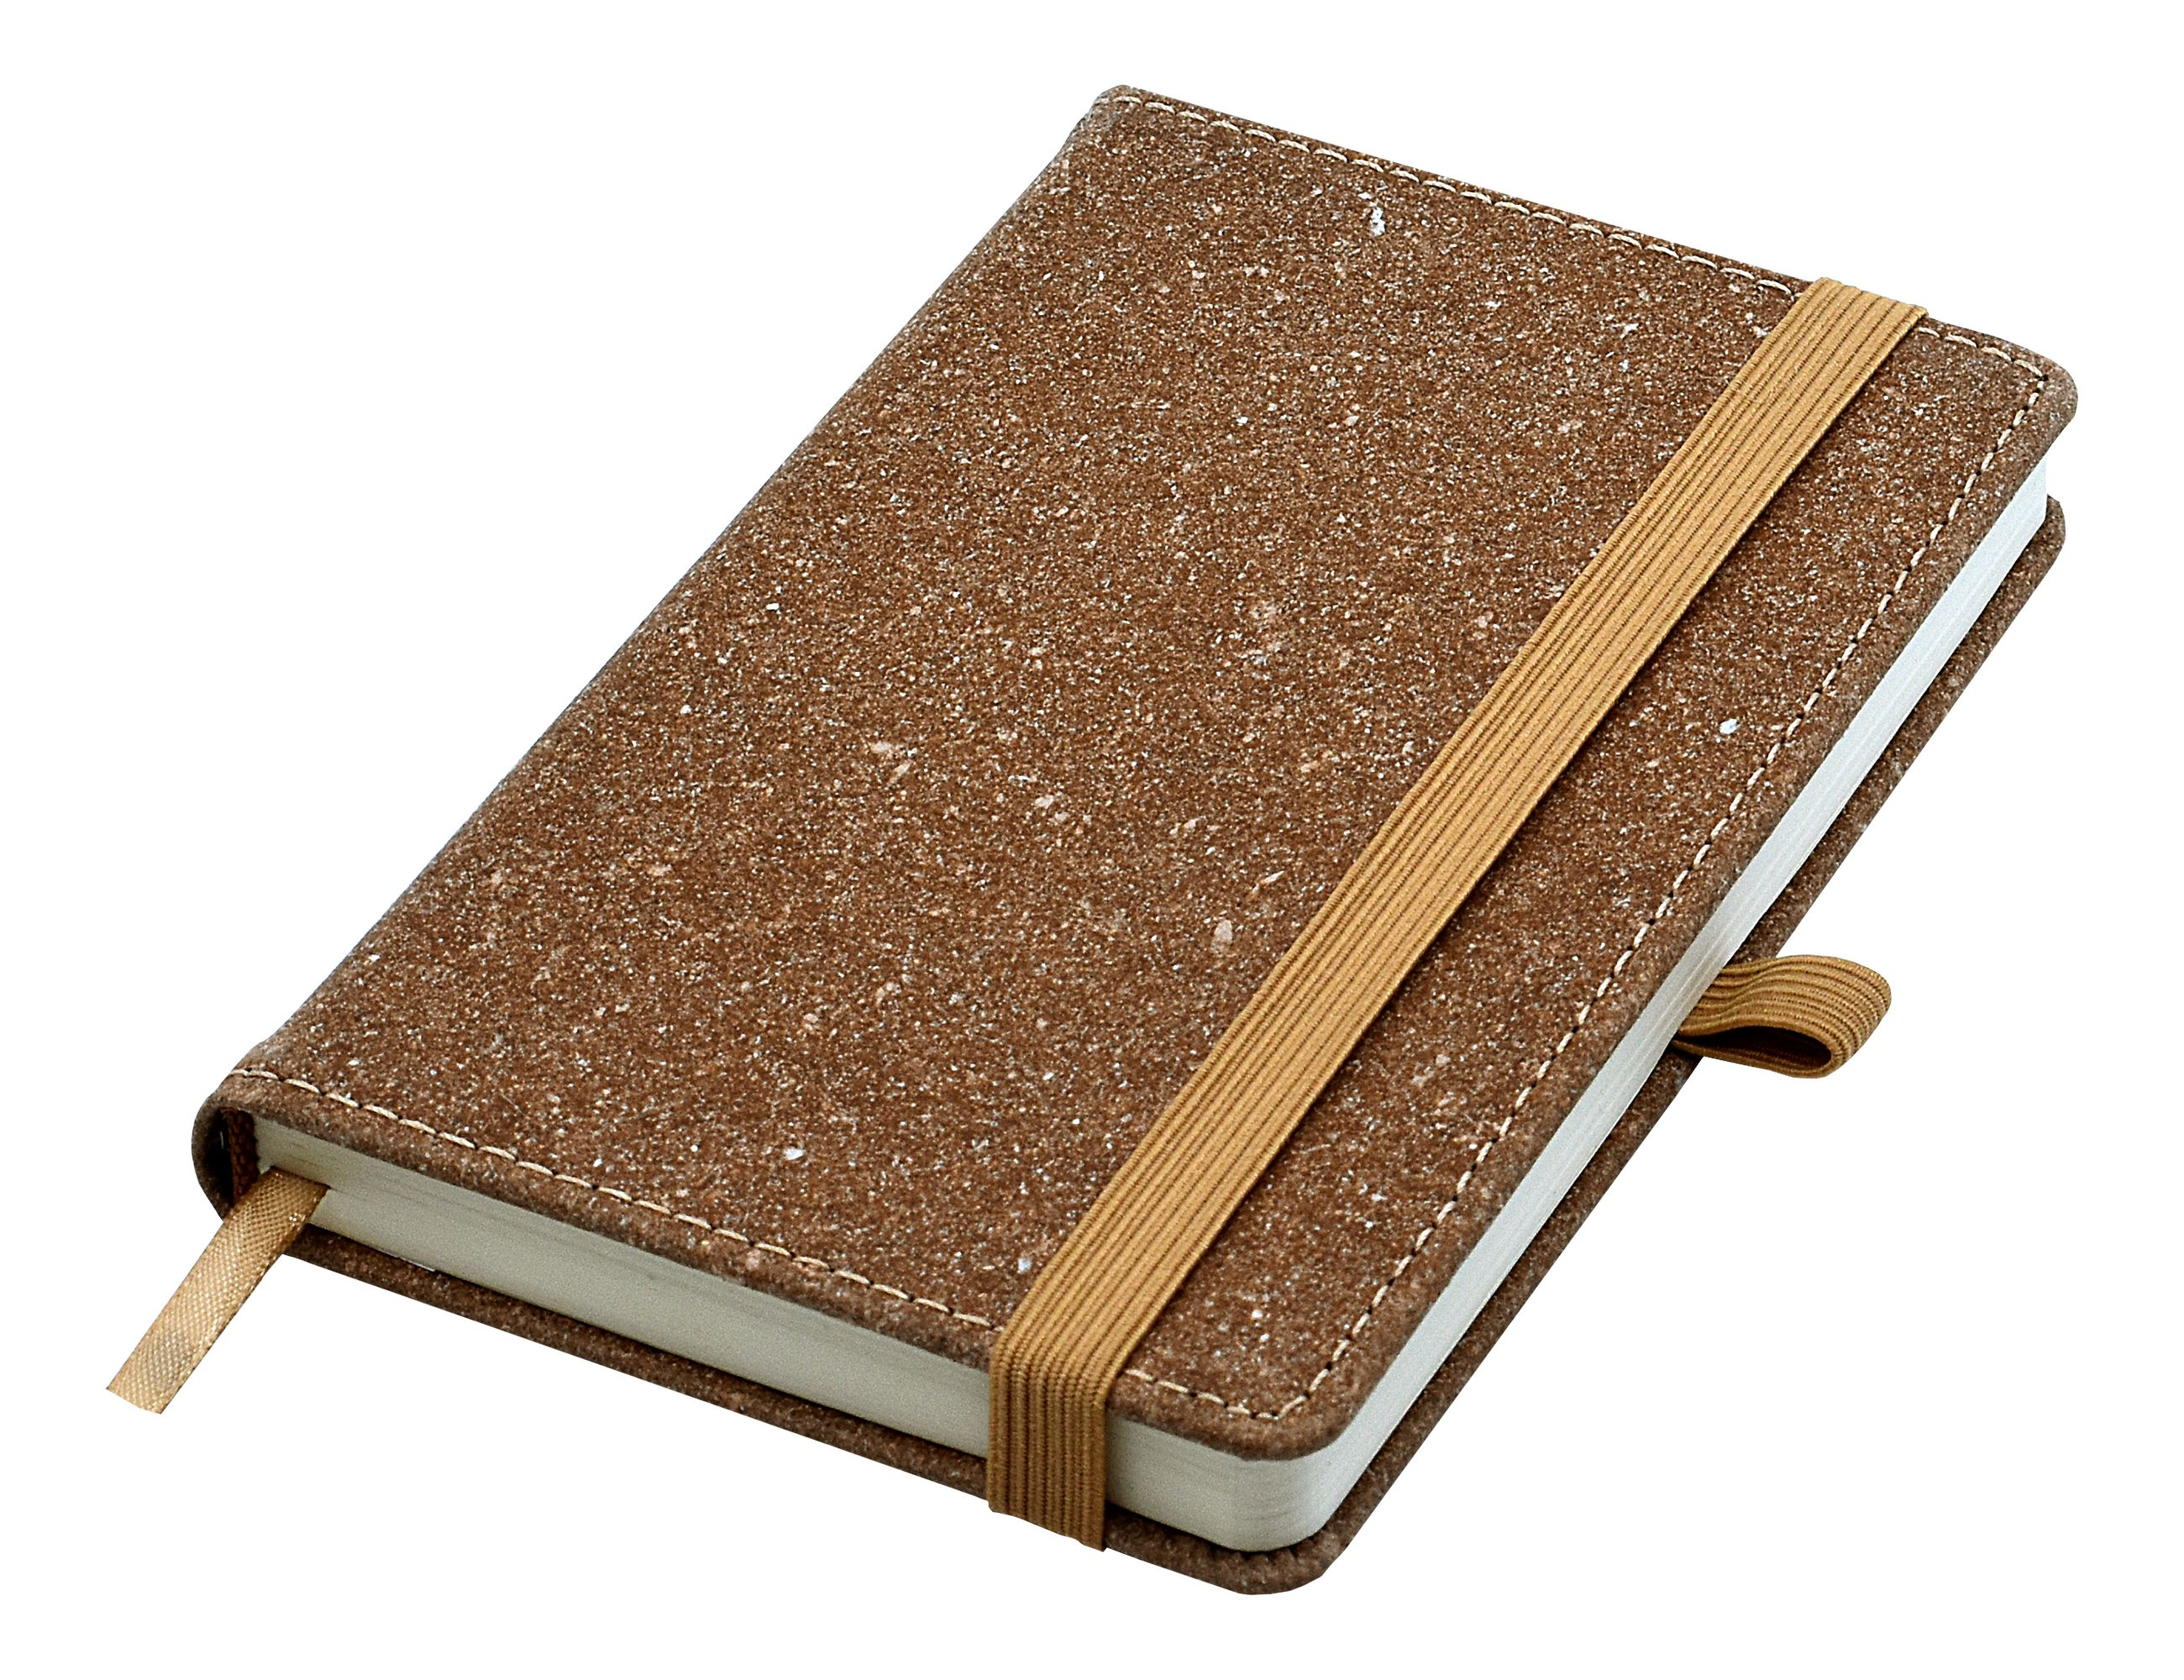 Promotional Product Italiano Bonded Leather Notebook A6